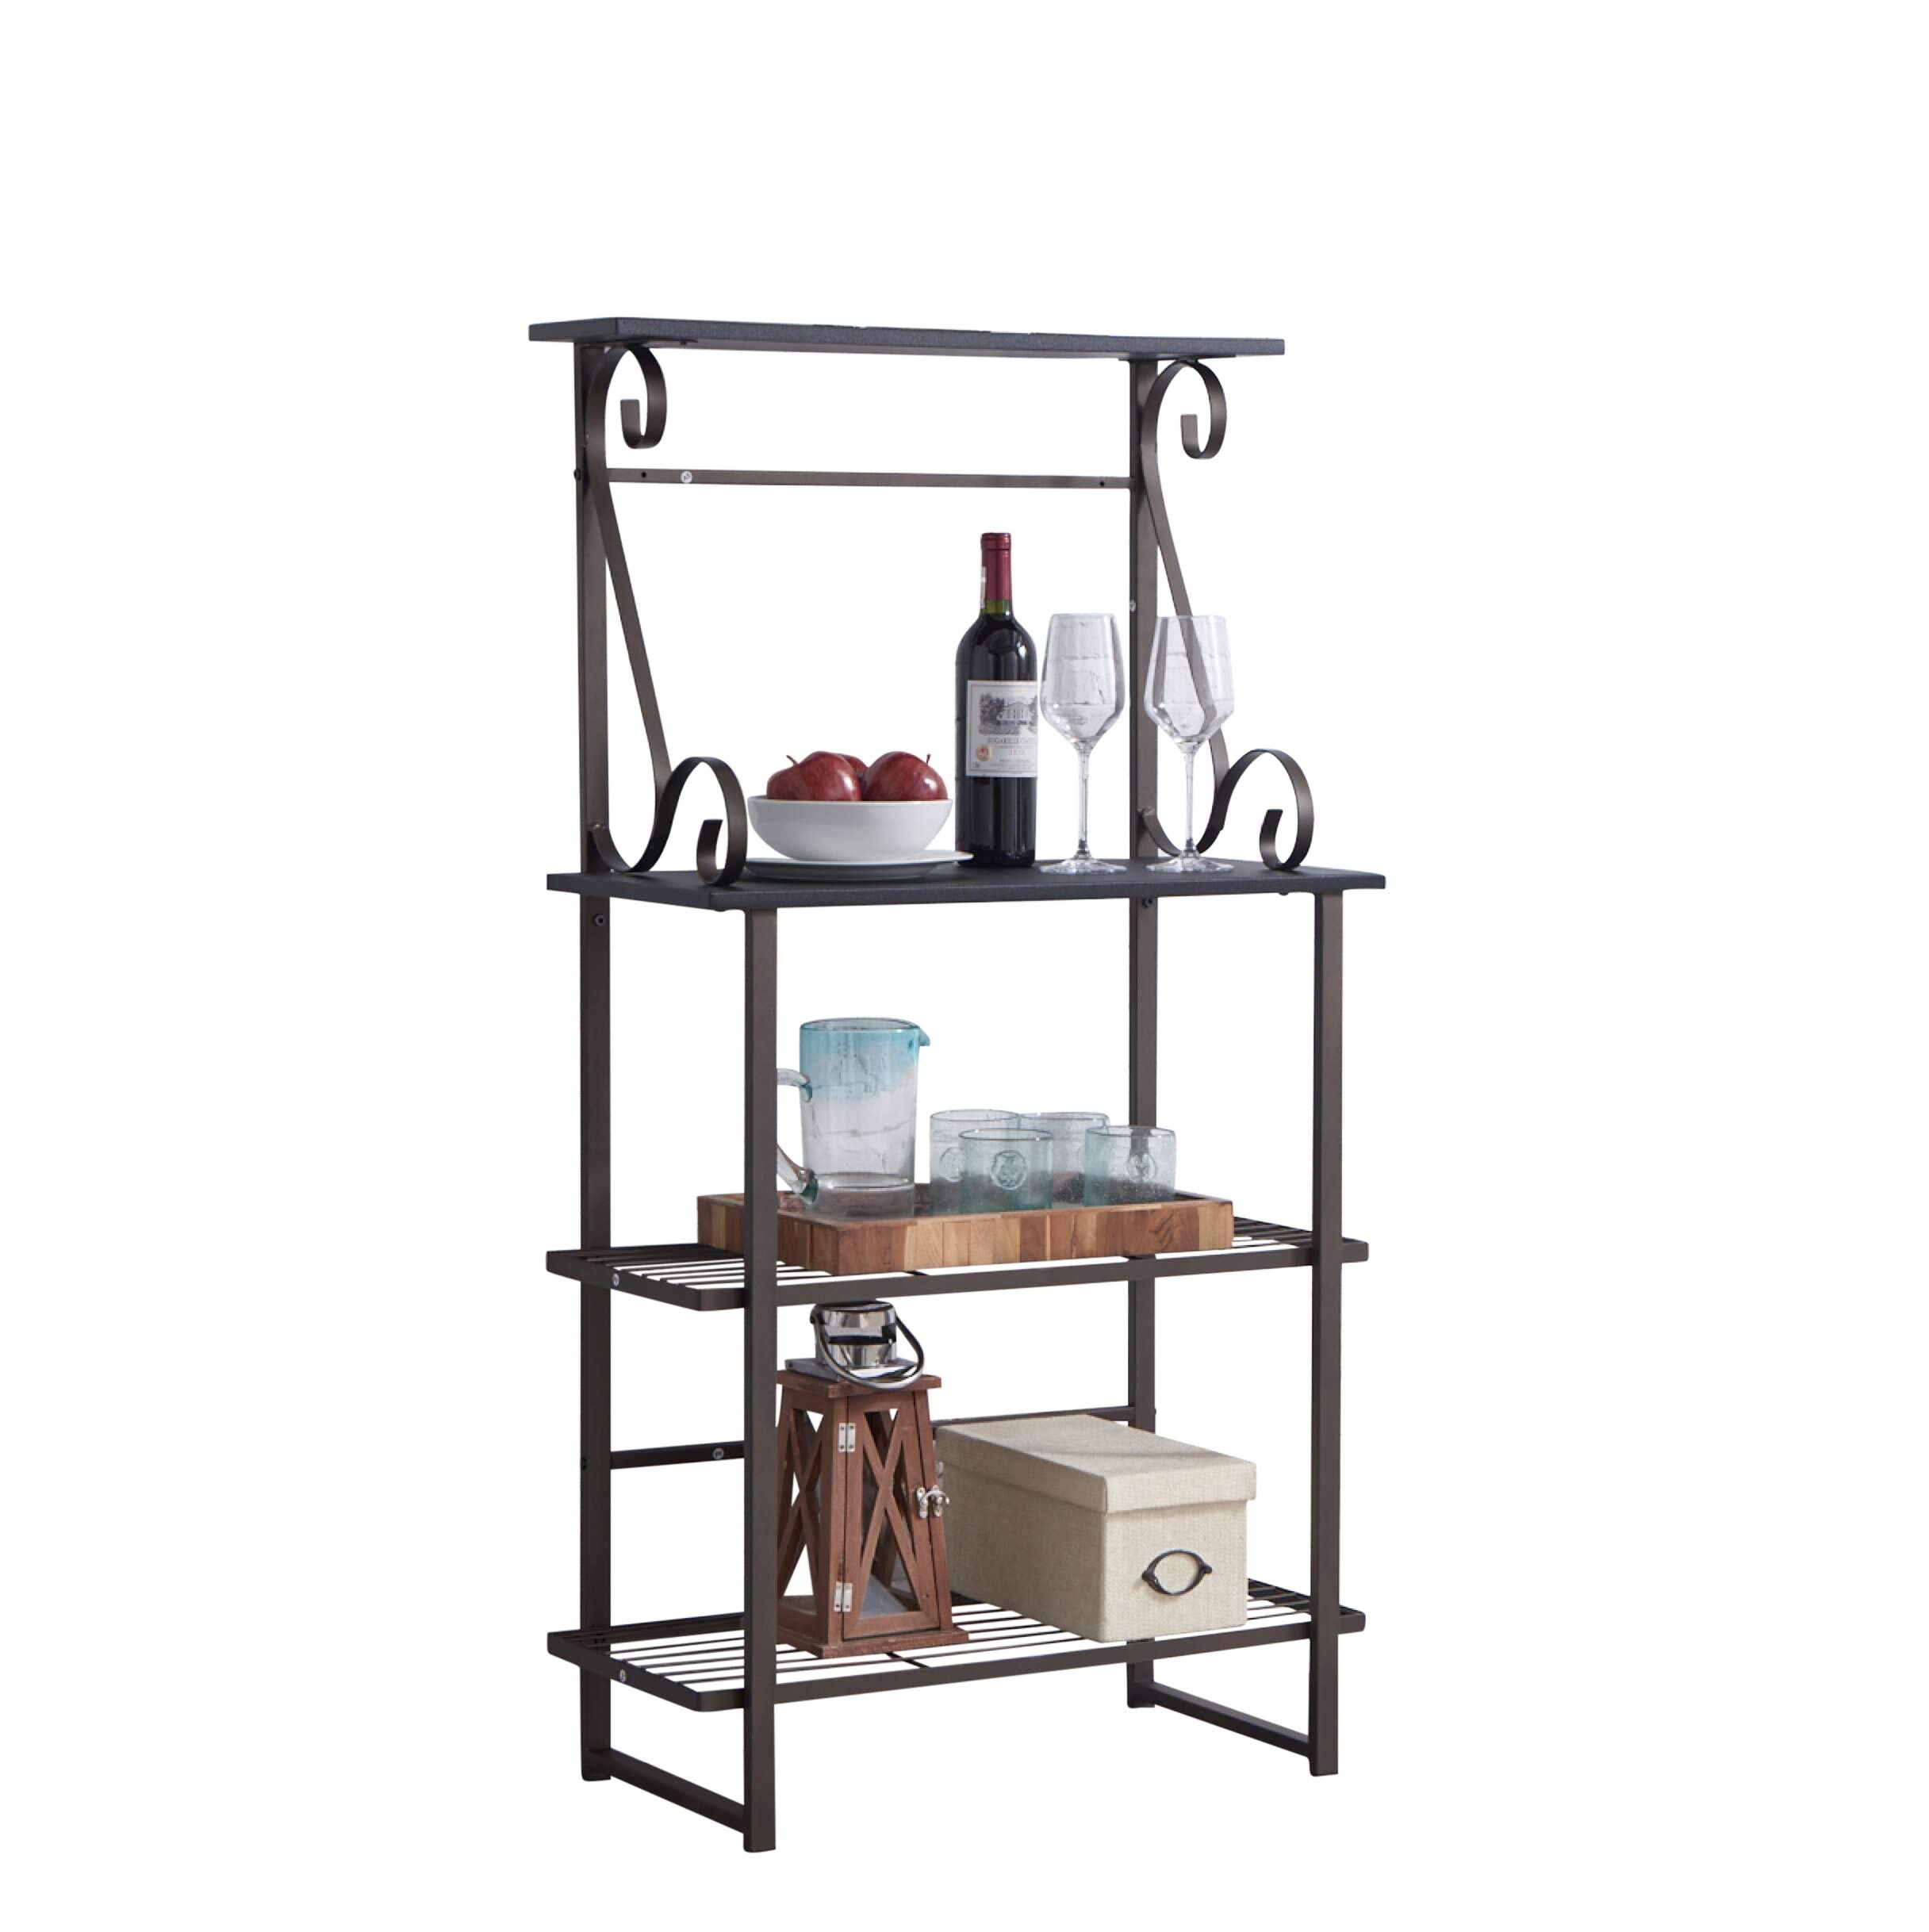 Kings Brand Furniture - Covington Metal Kitchen Baker's Rack, Pewter by Kings Brand Furniture (Image #4)